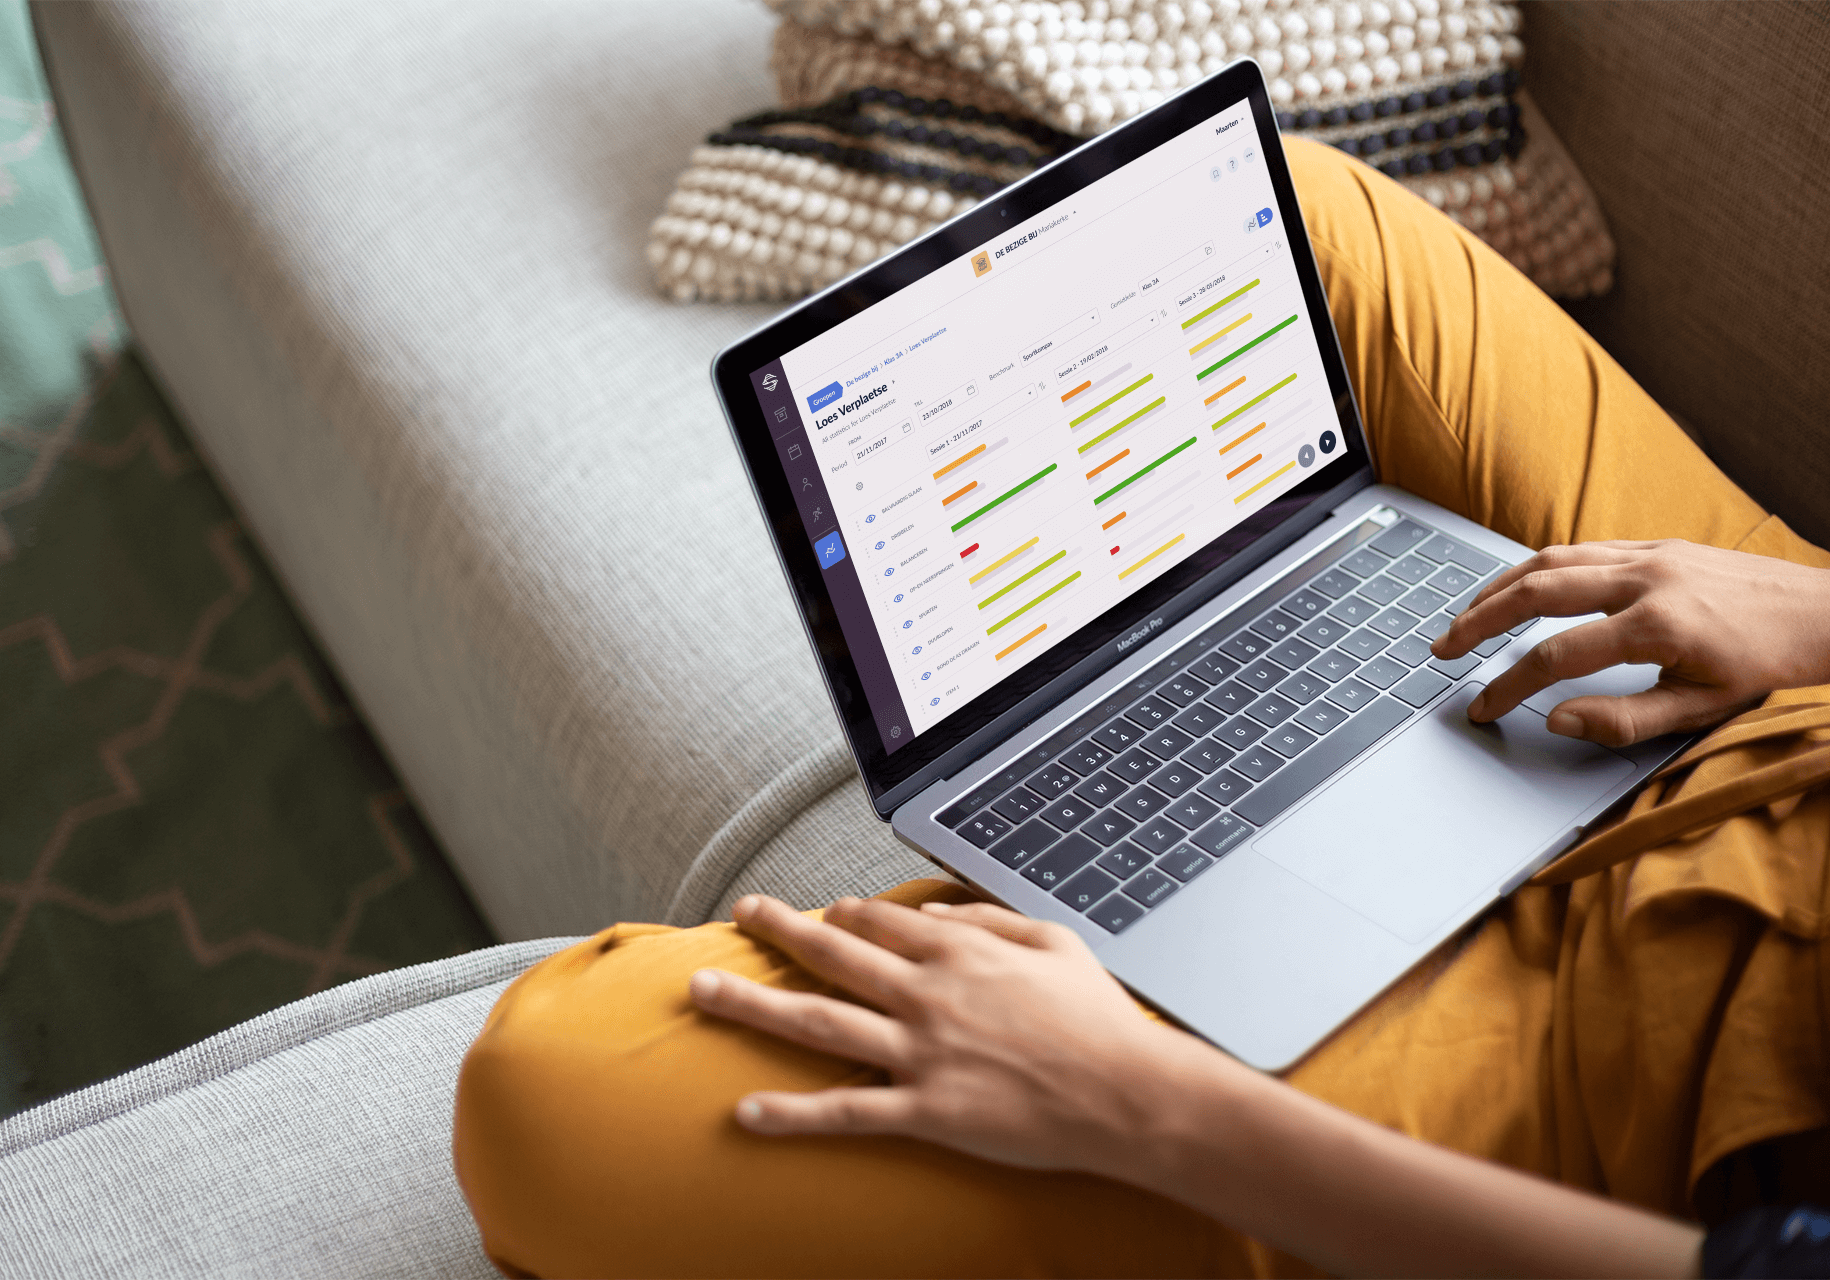 woman-working-with-a-macbook-mockup-sitting-on-a-sofa-a21180